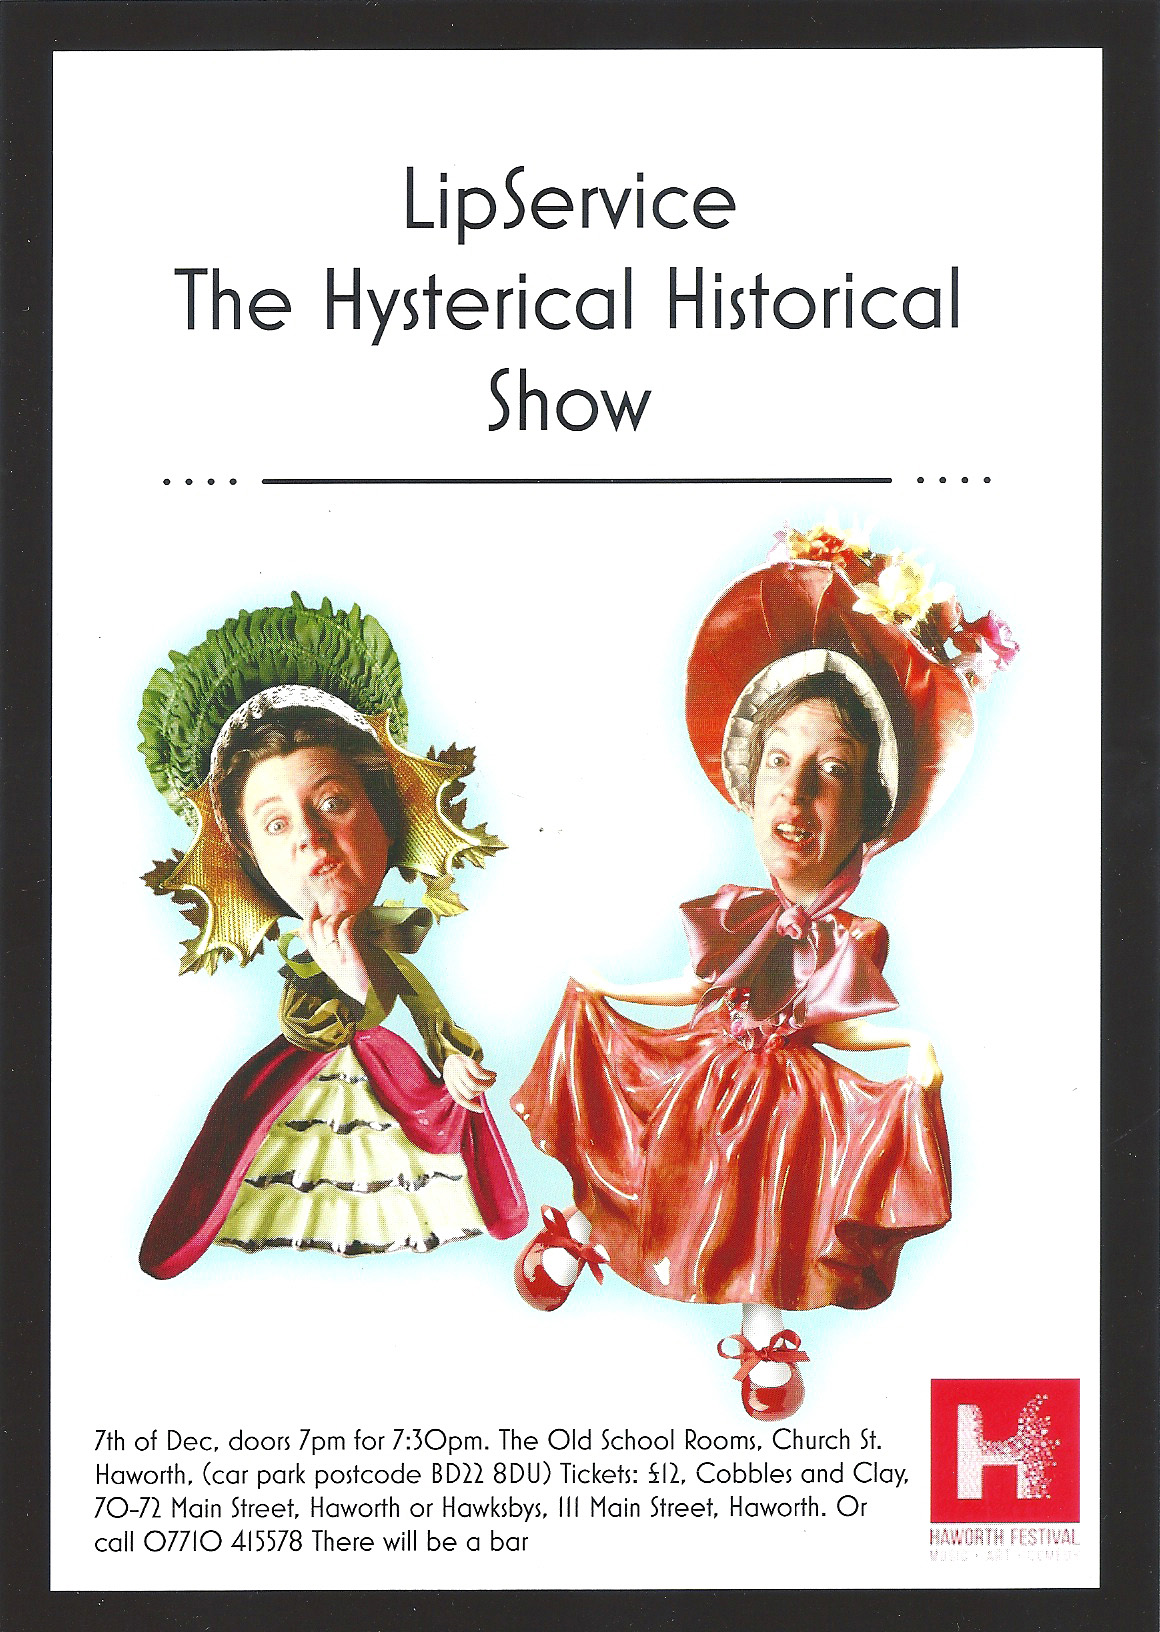 The Hysterical Historical Show